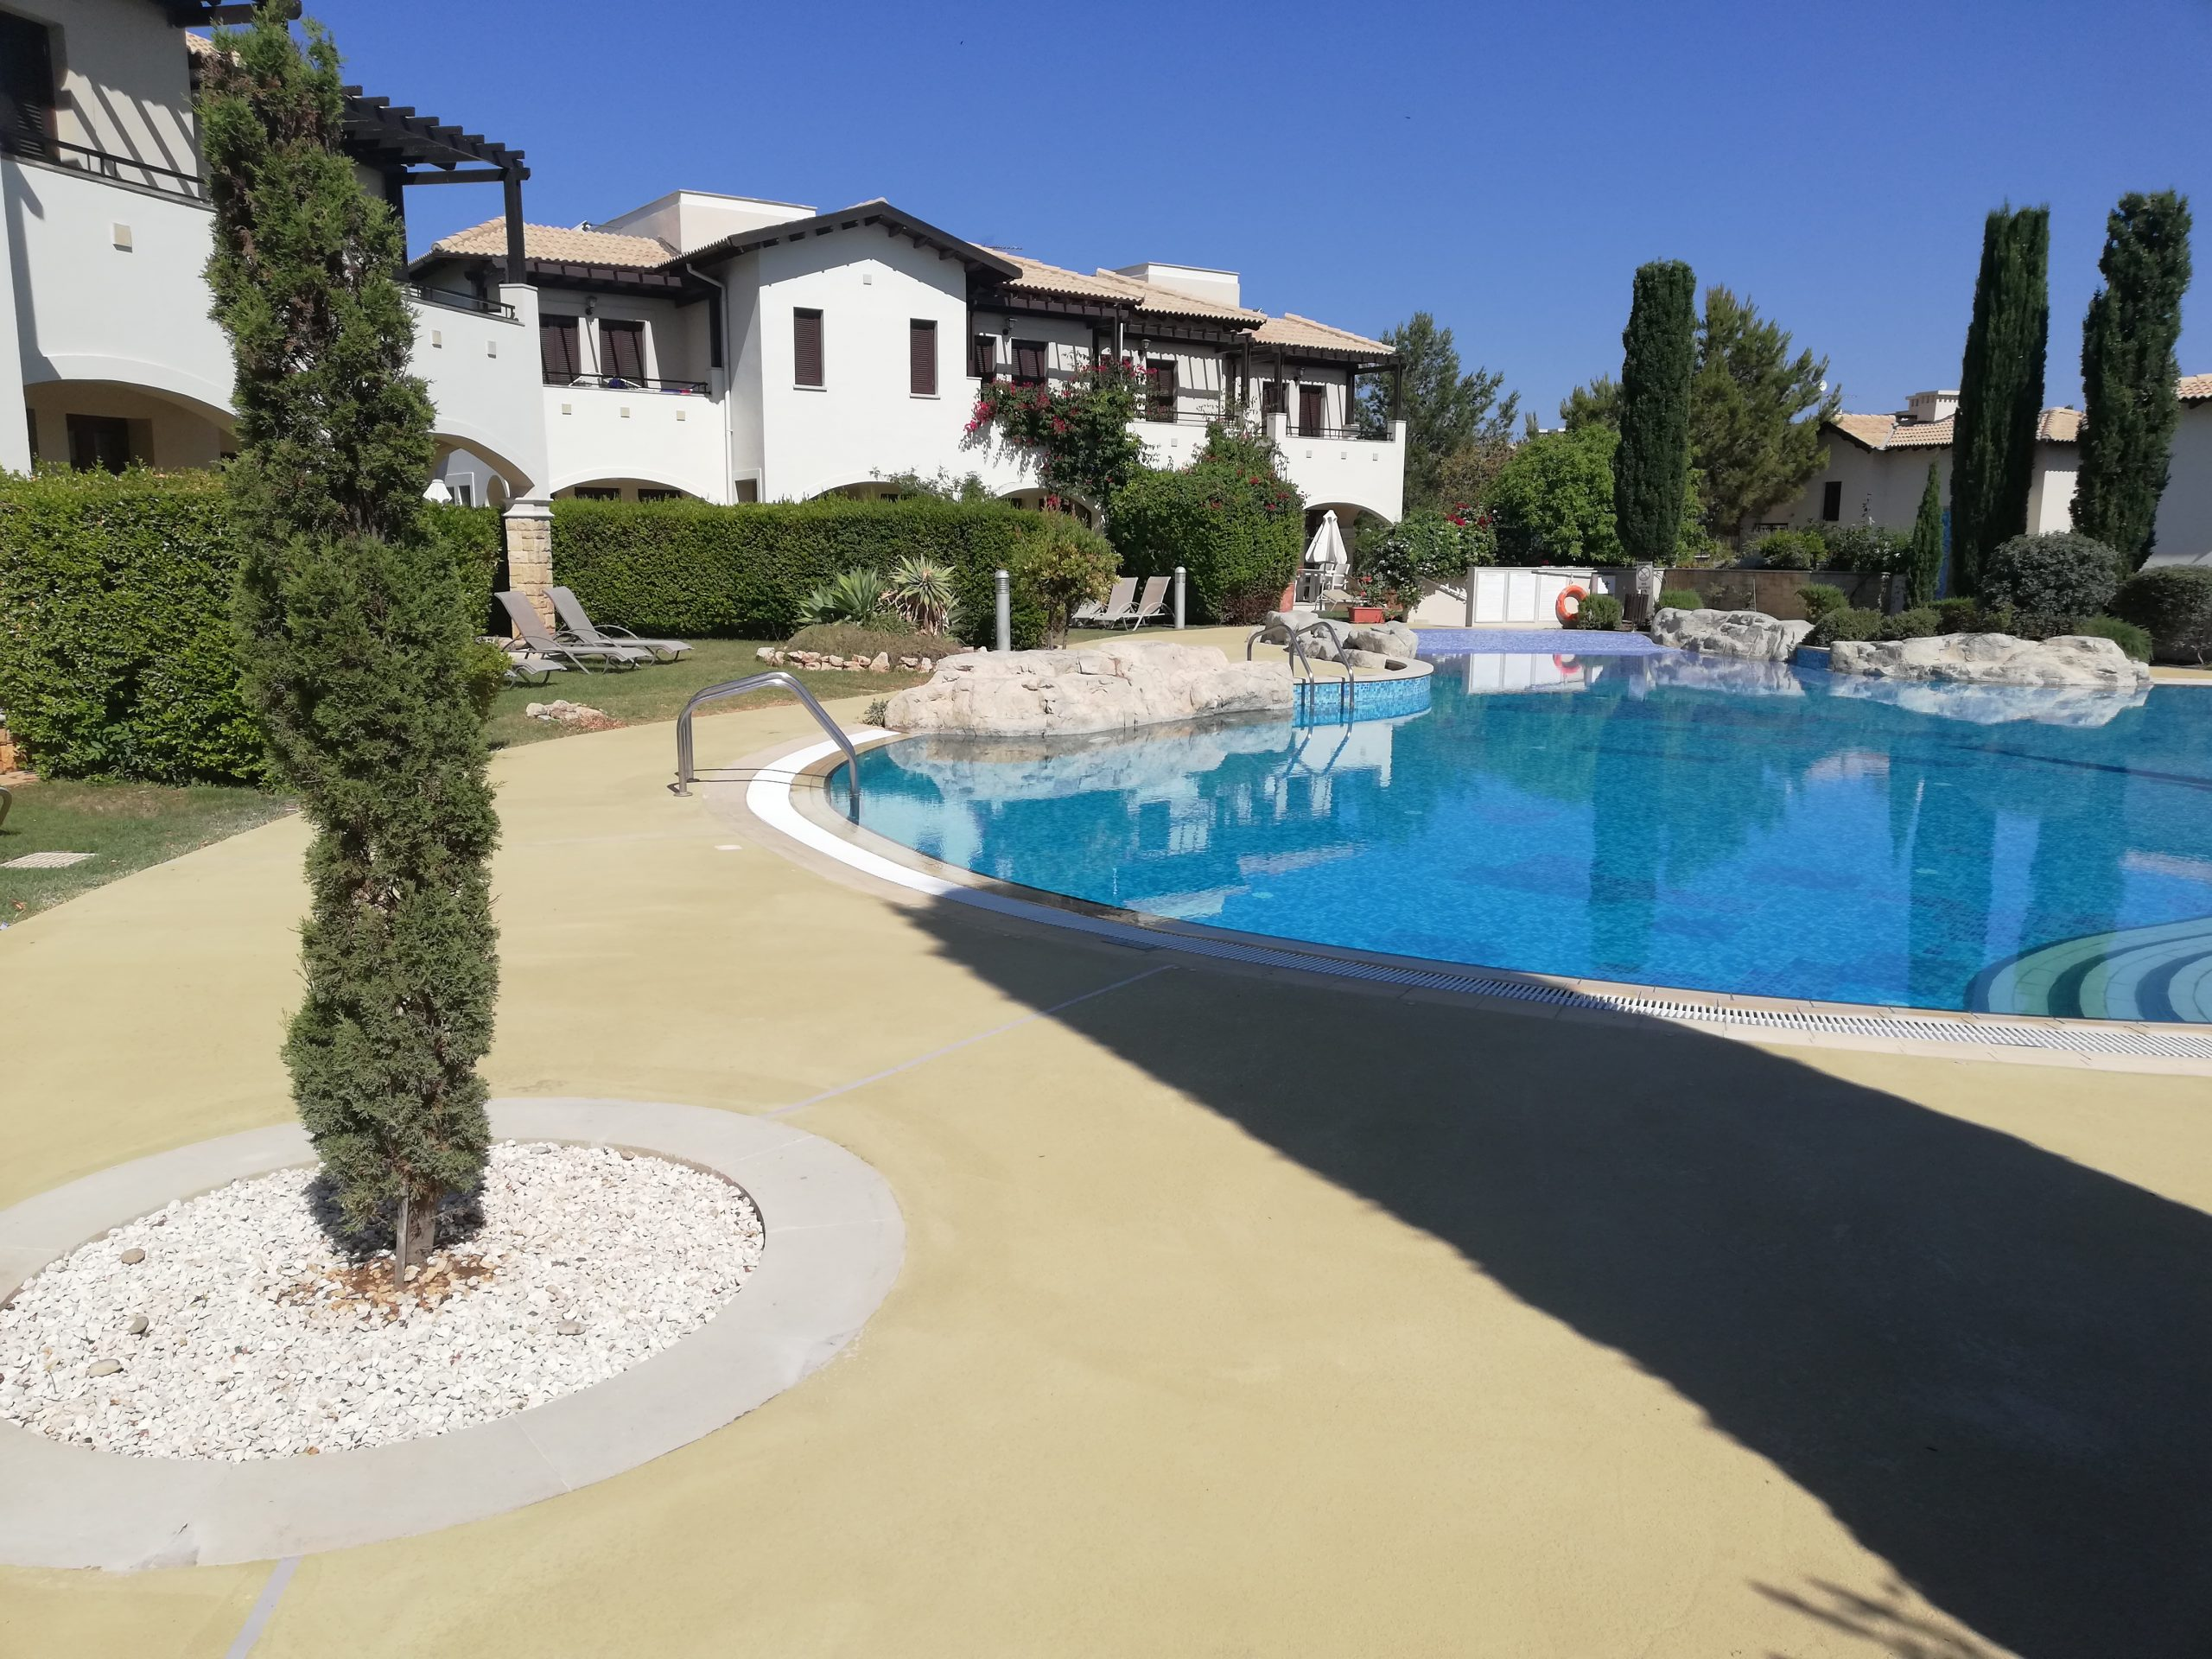 APHRODITE HILLS – HELIOS HEIGHTS